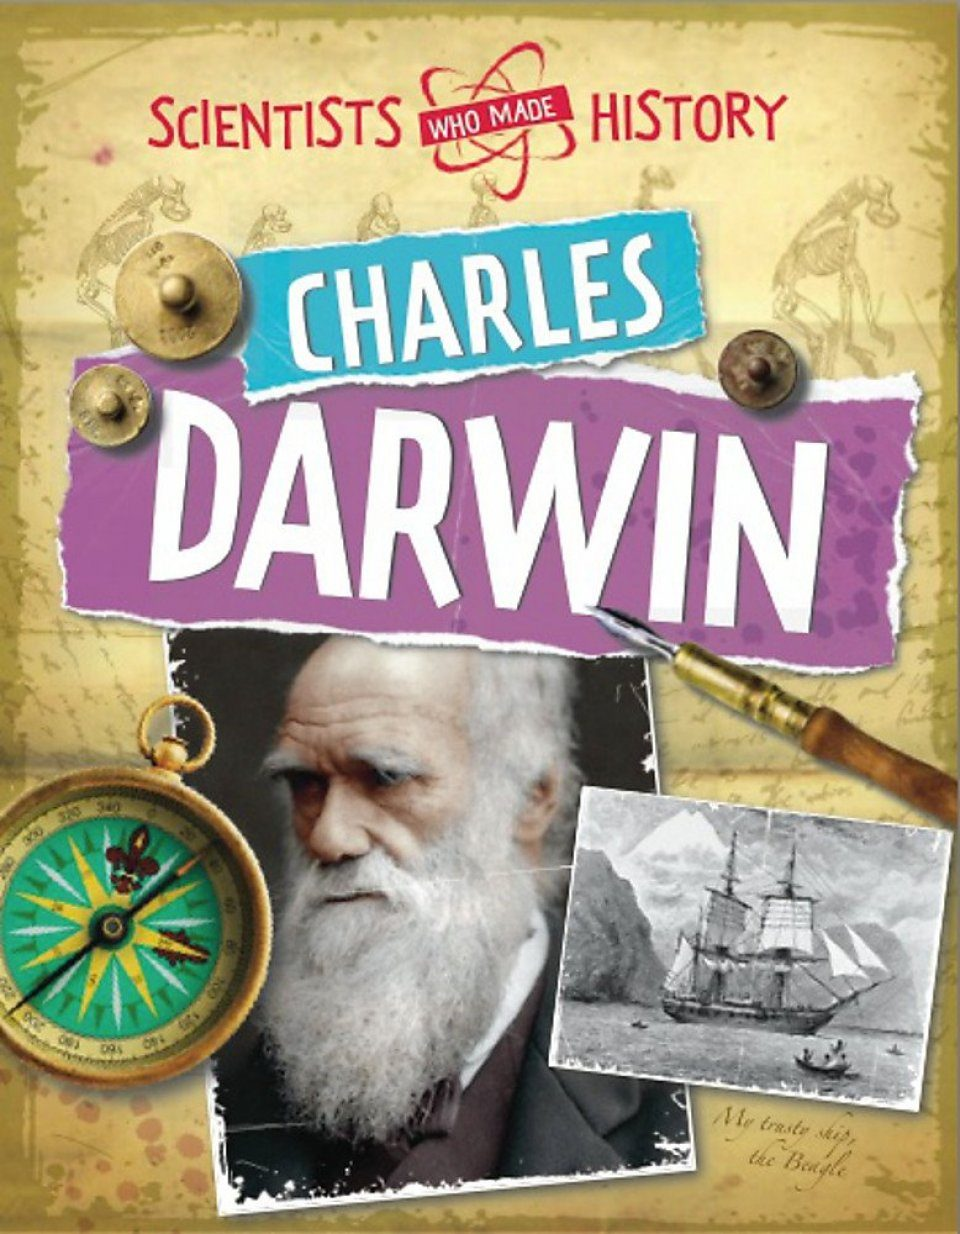 Scientists Who Made History: Charles Darwin